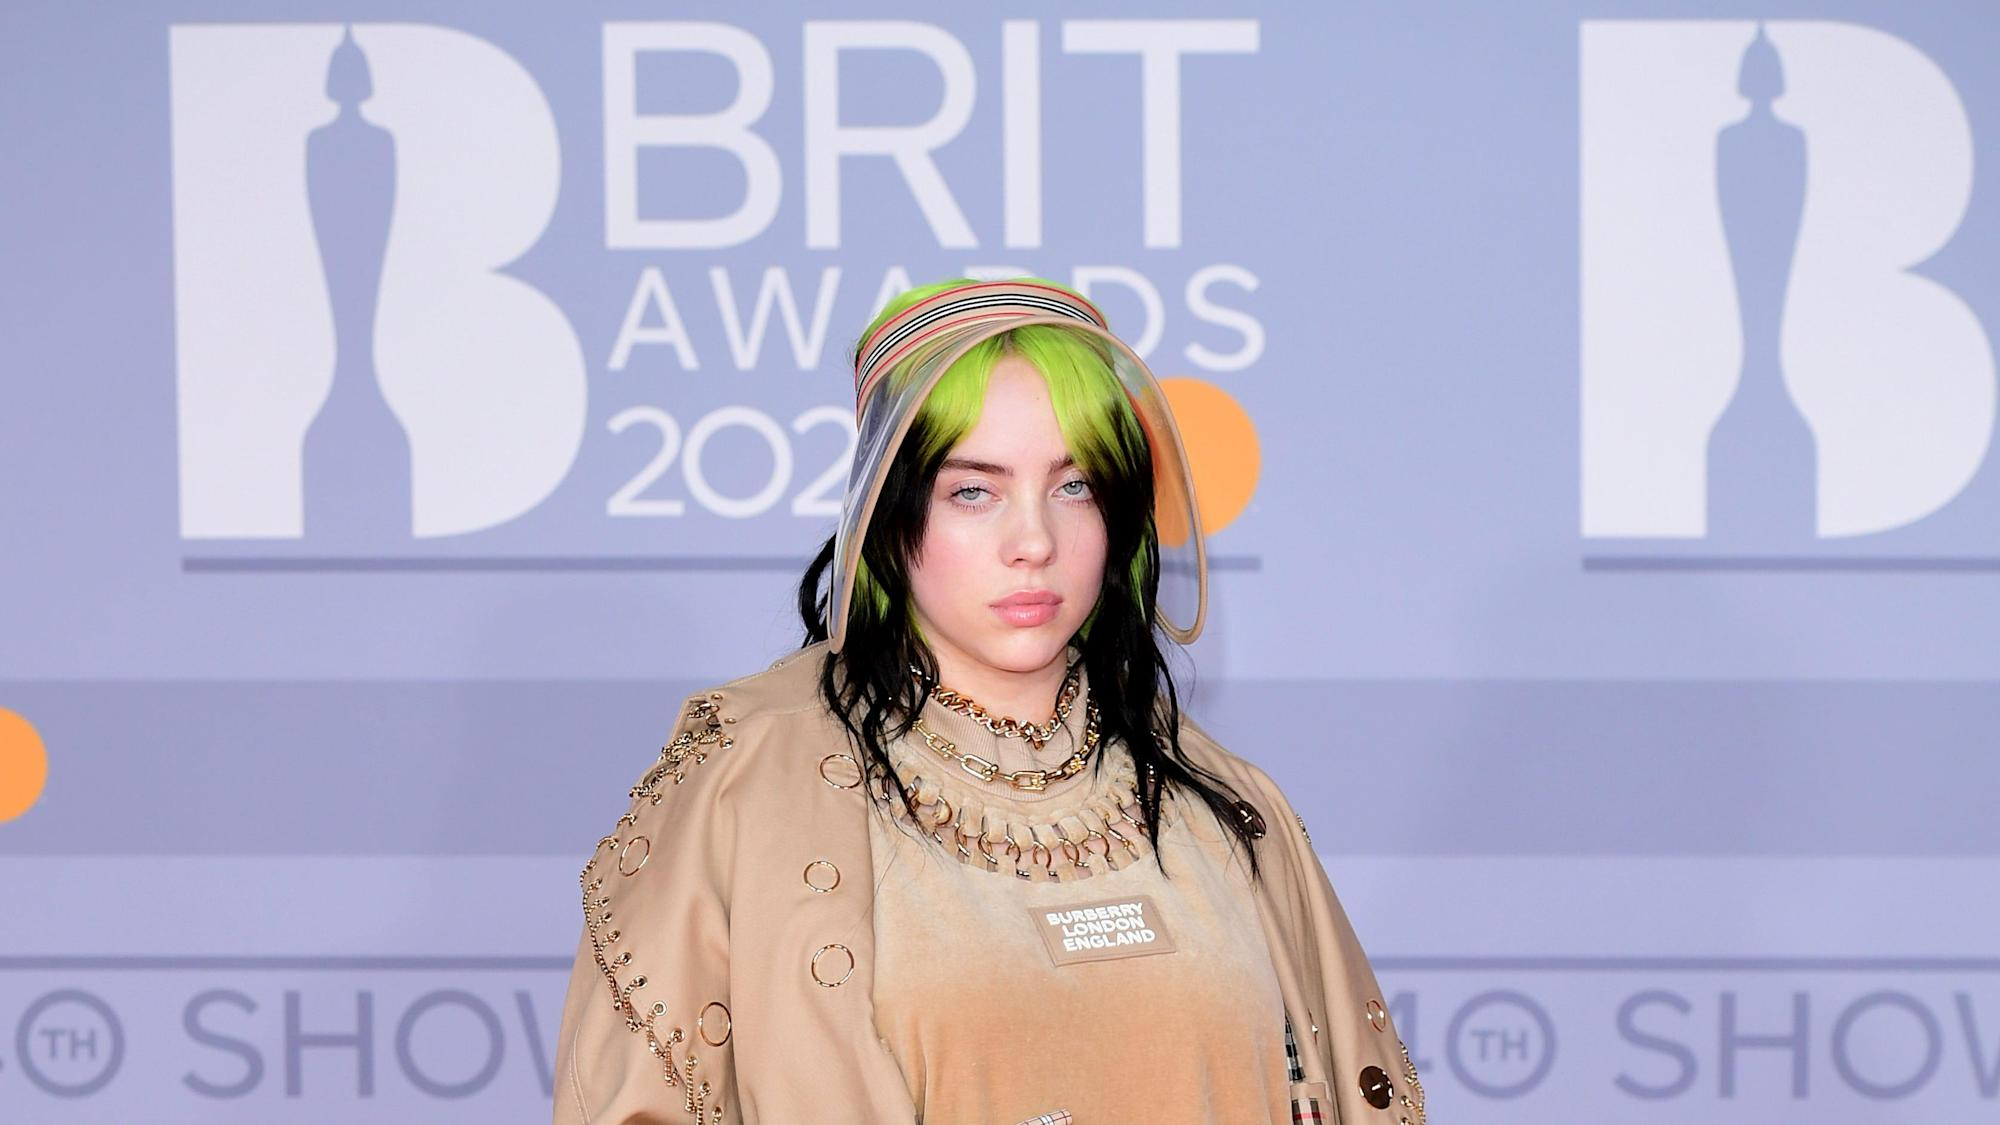 Billie Eilish takes questions from stars including Stormzy and Justin Bieber